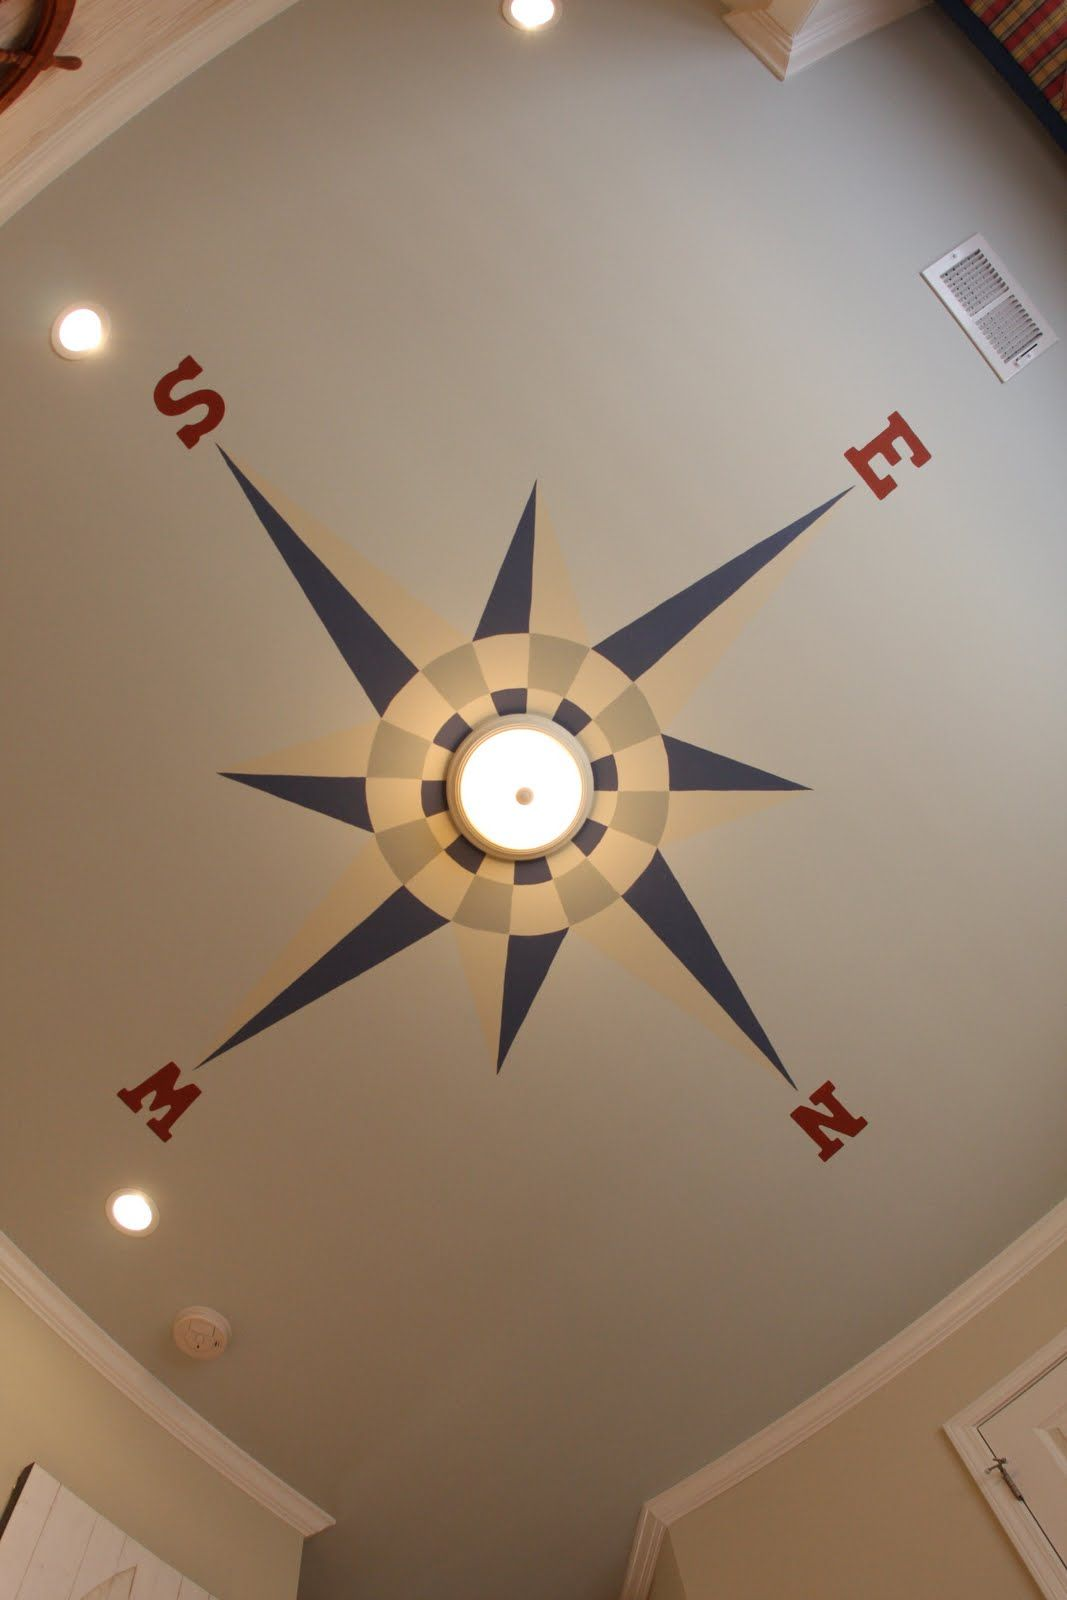 Kids bedroom ceiling lights - Pirate Nursery Ideas For Boys Cool Boy Nursery Themes A Little Eclectic July